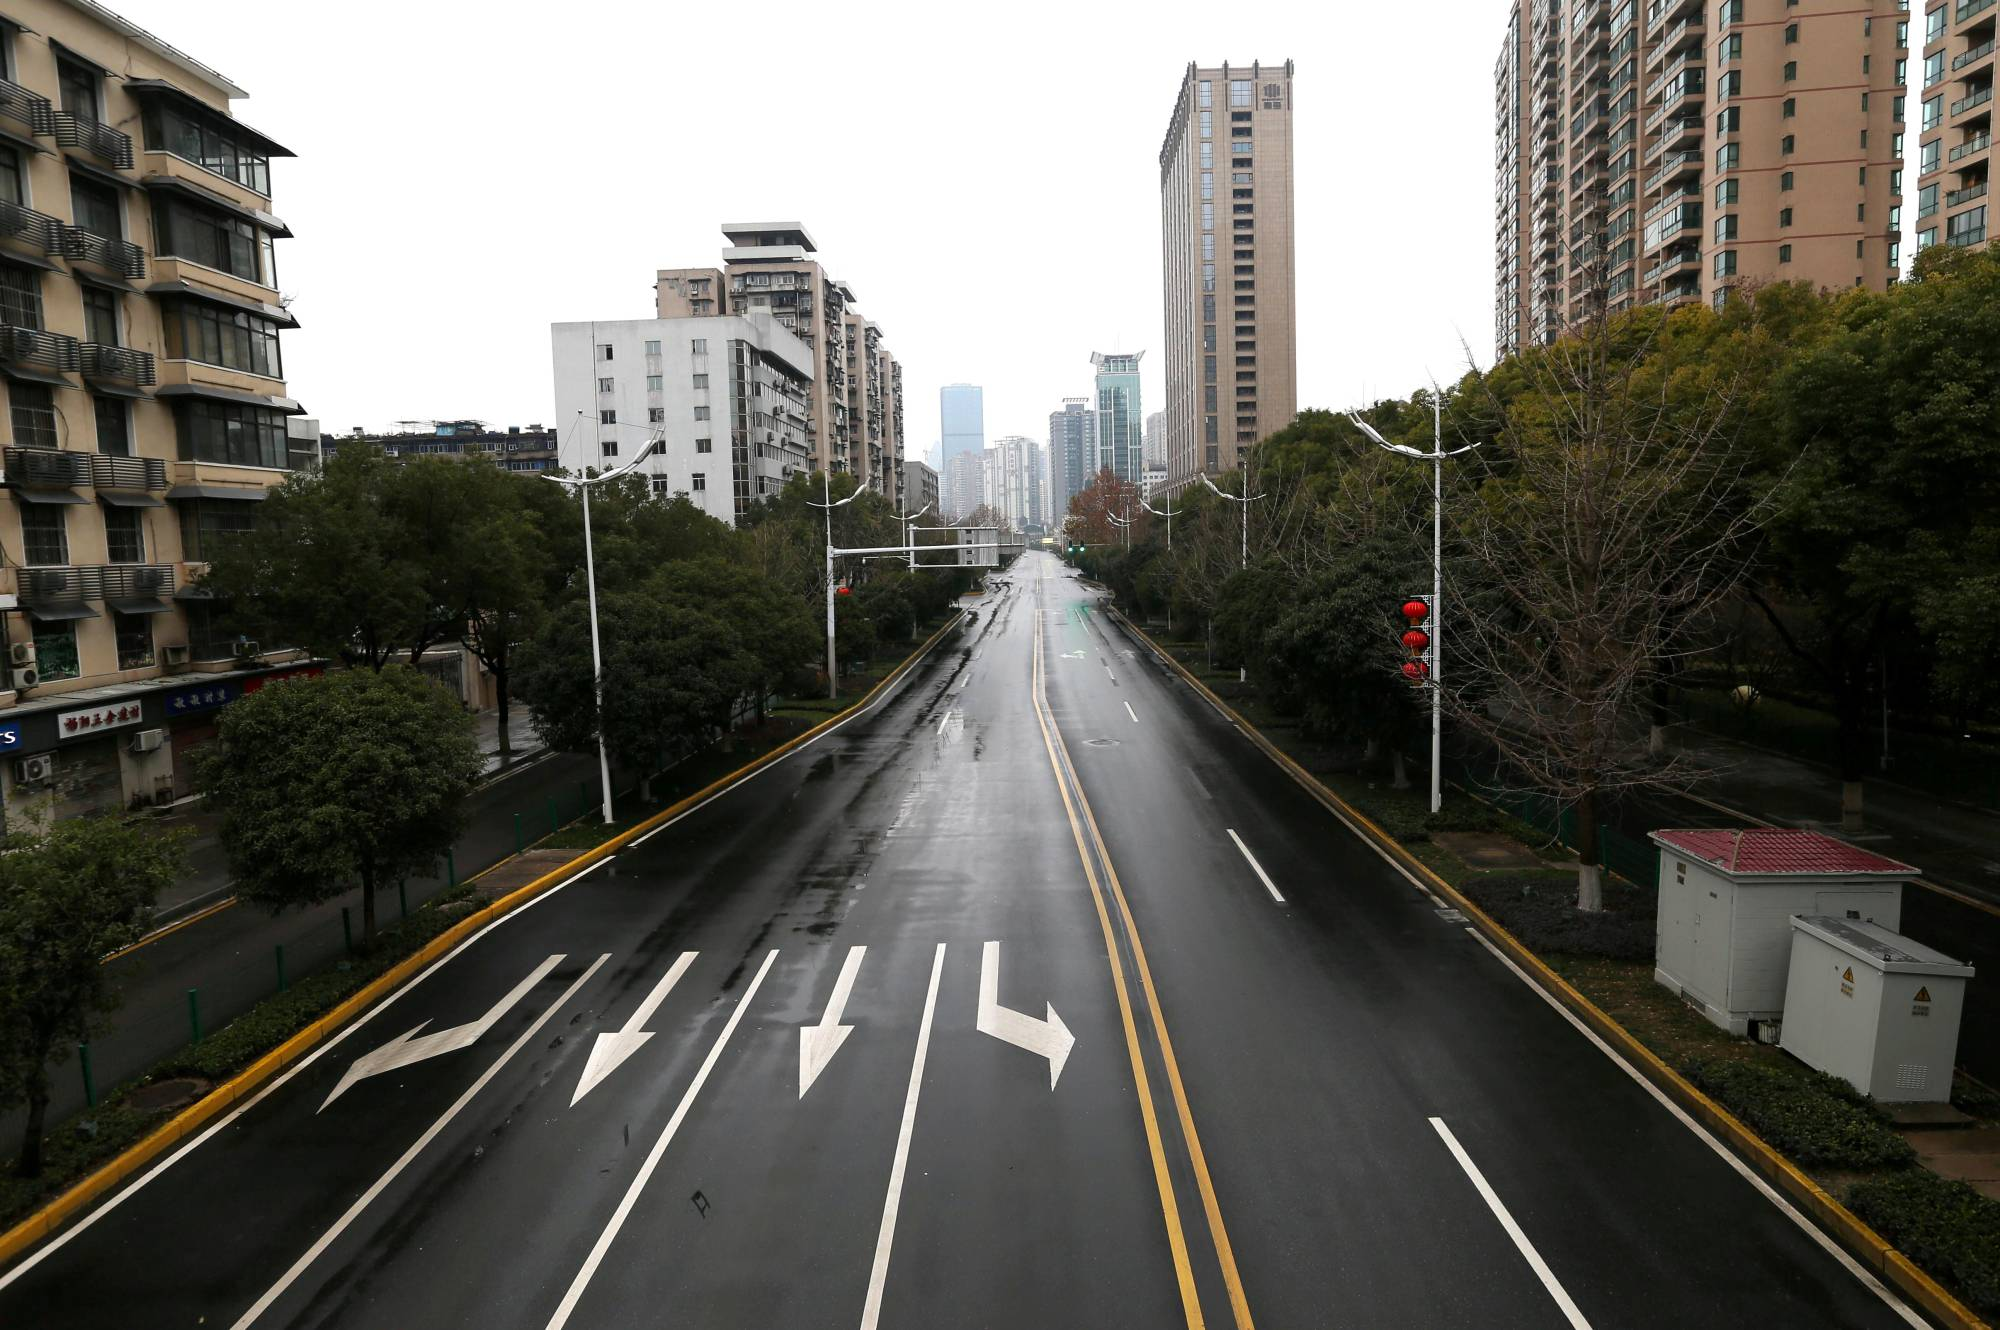 Wuhan, the epicenter of the COVID-19 outbreak, was placed under lockdown in January 2020, the first area of many around the world to be closed off for periods of the year. | CHINA DAILY / VIA REUTERS